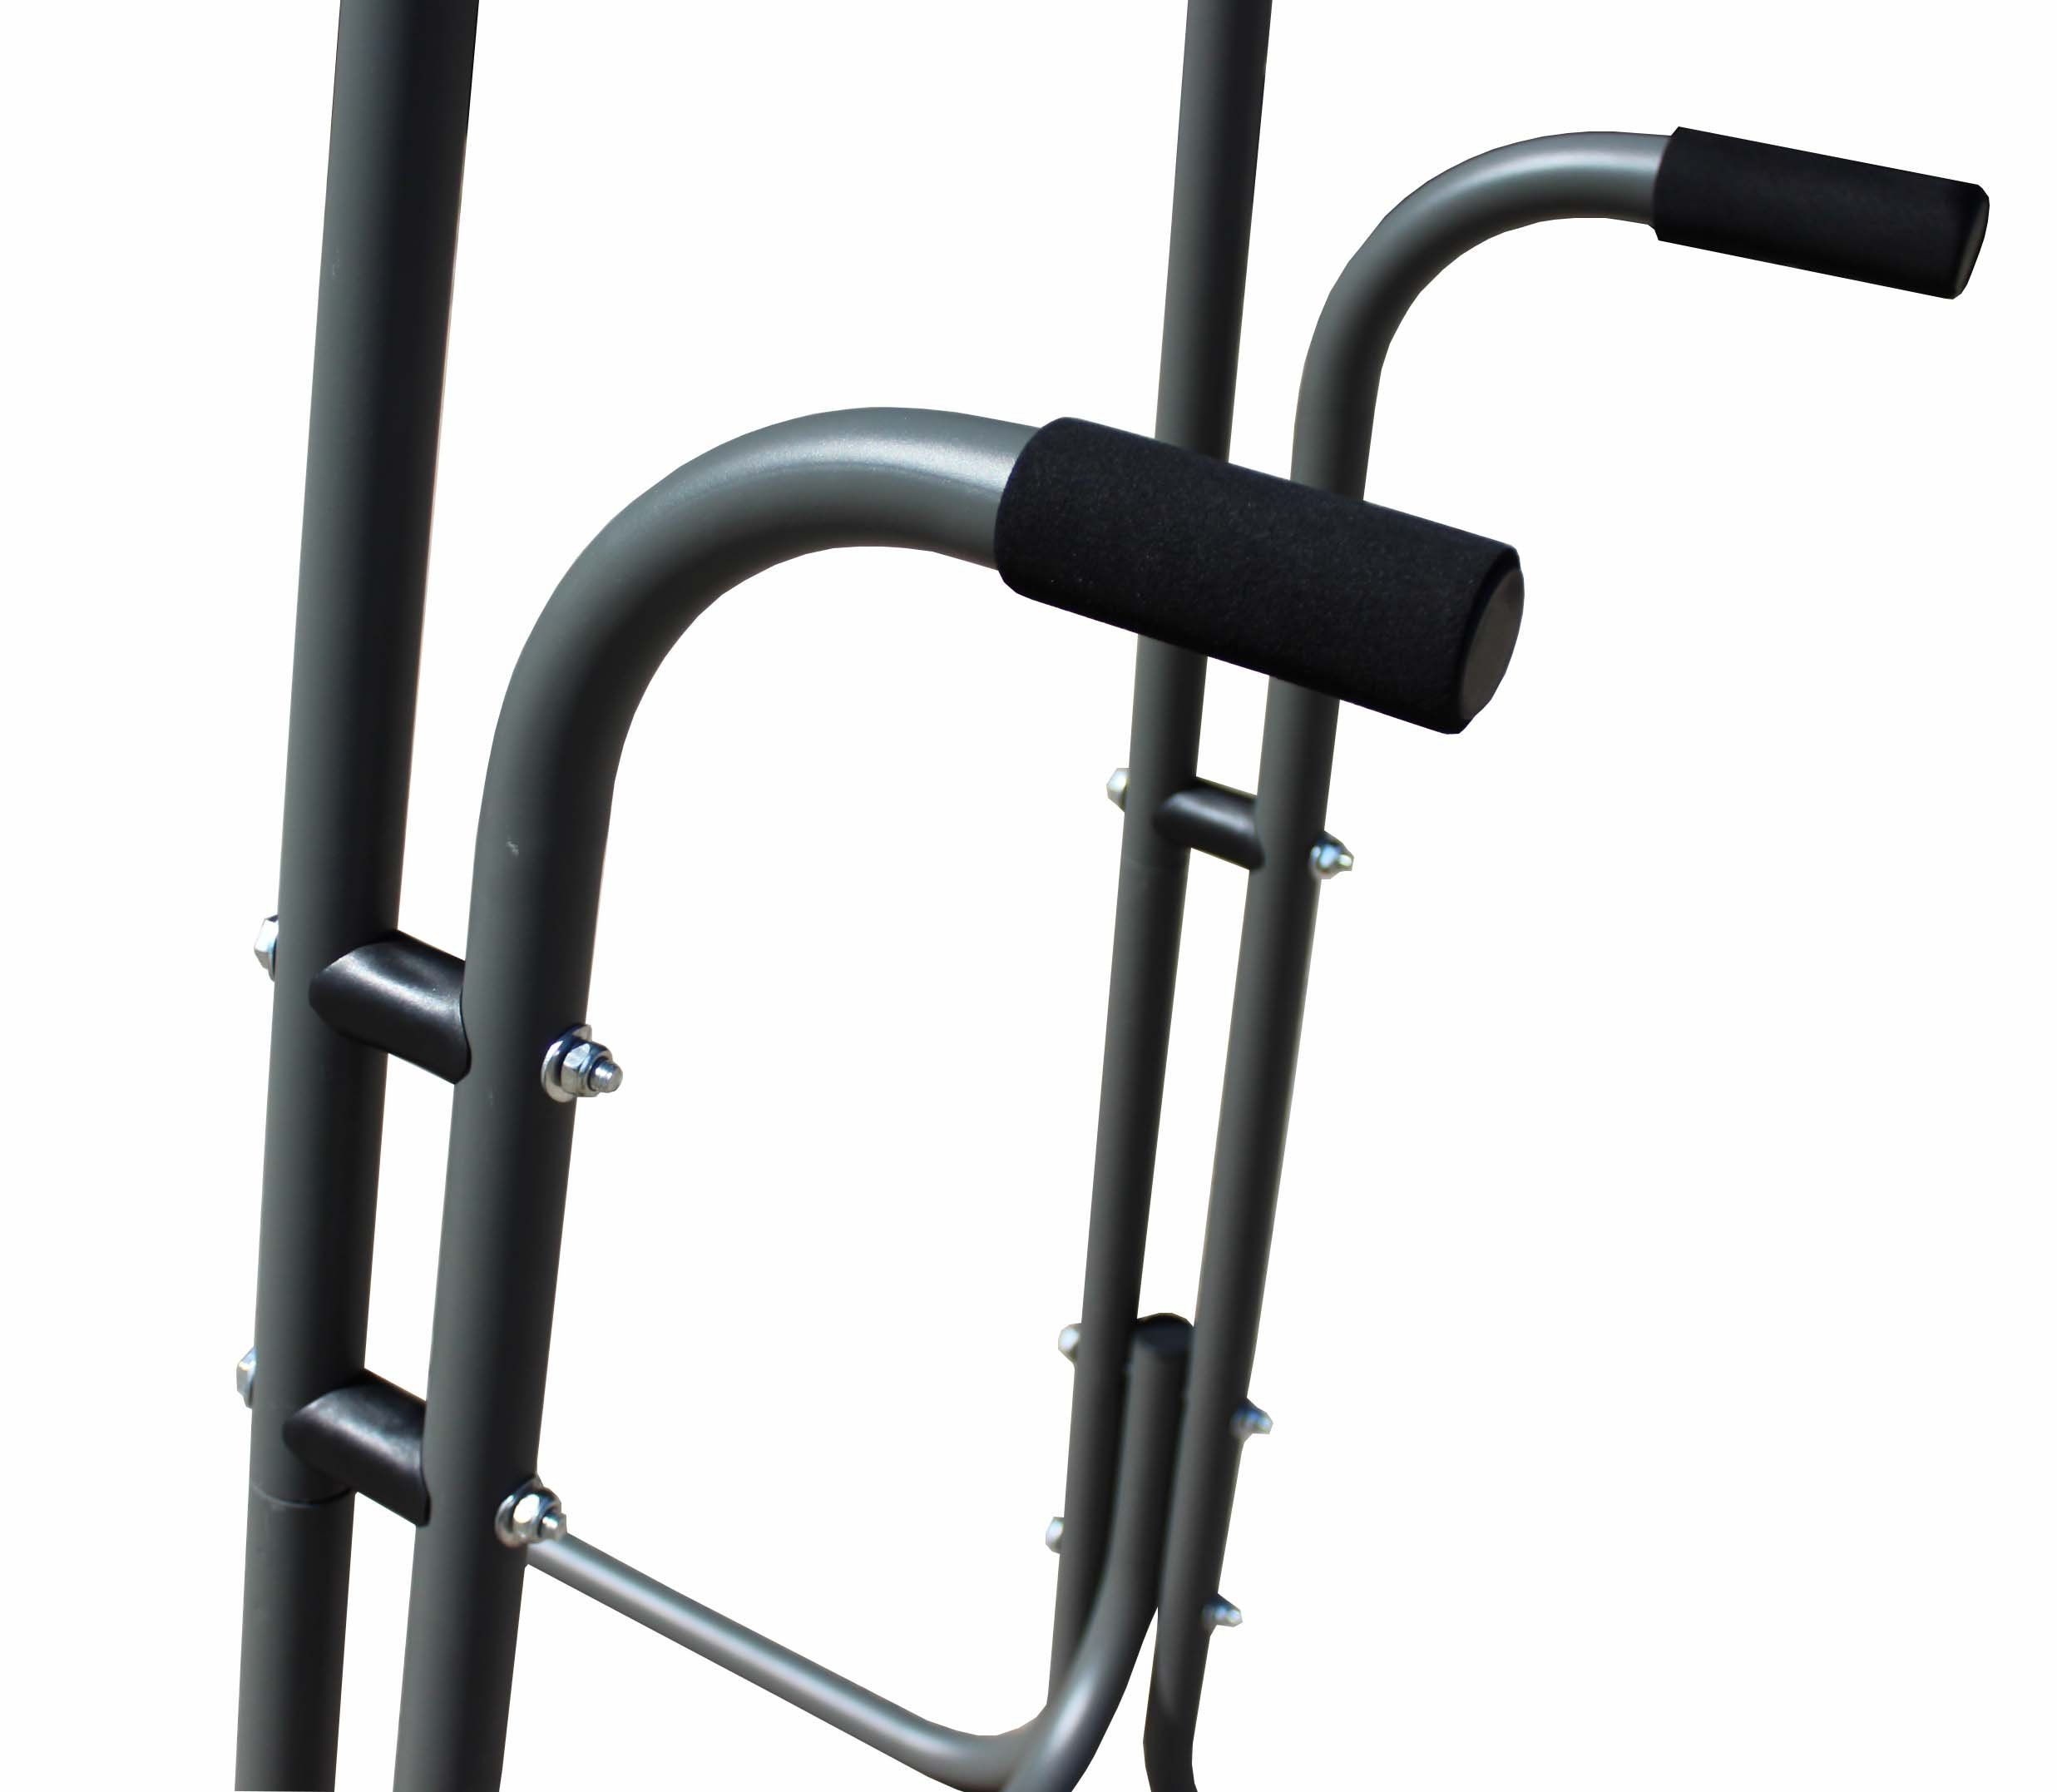 Titan fit power tower workout station pull up dip station